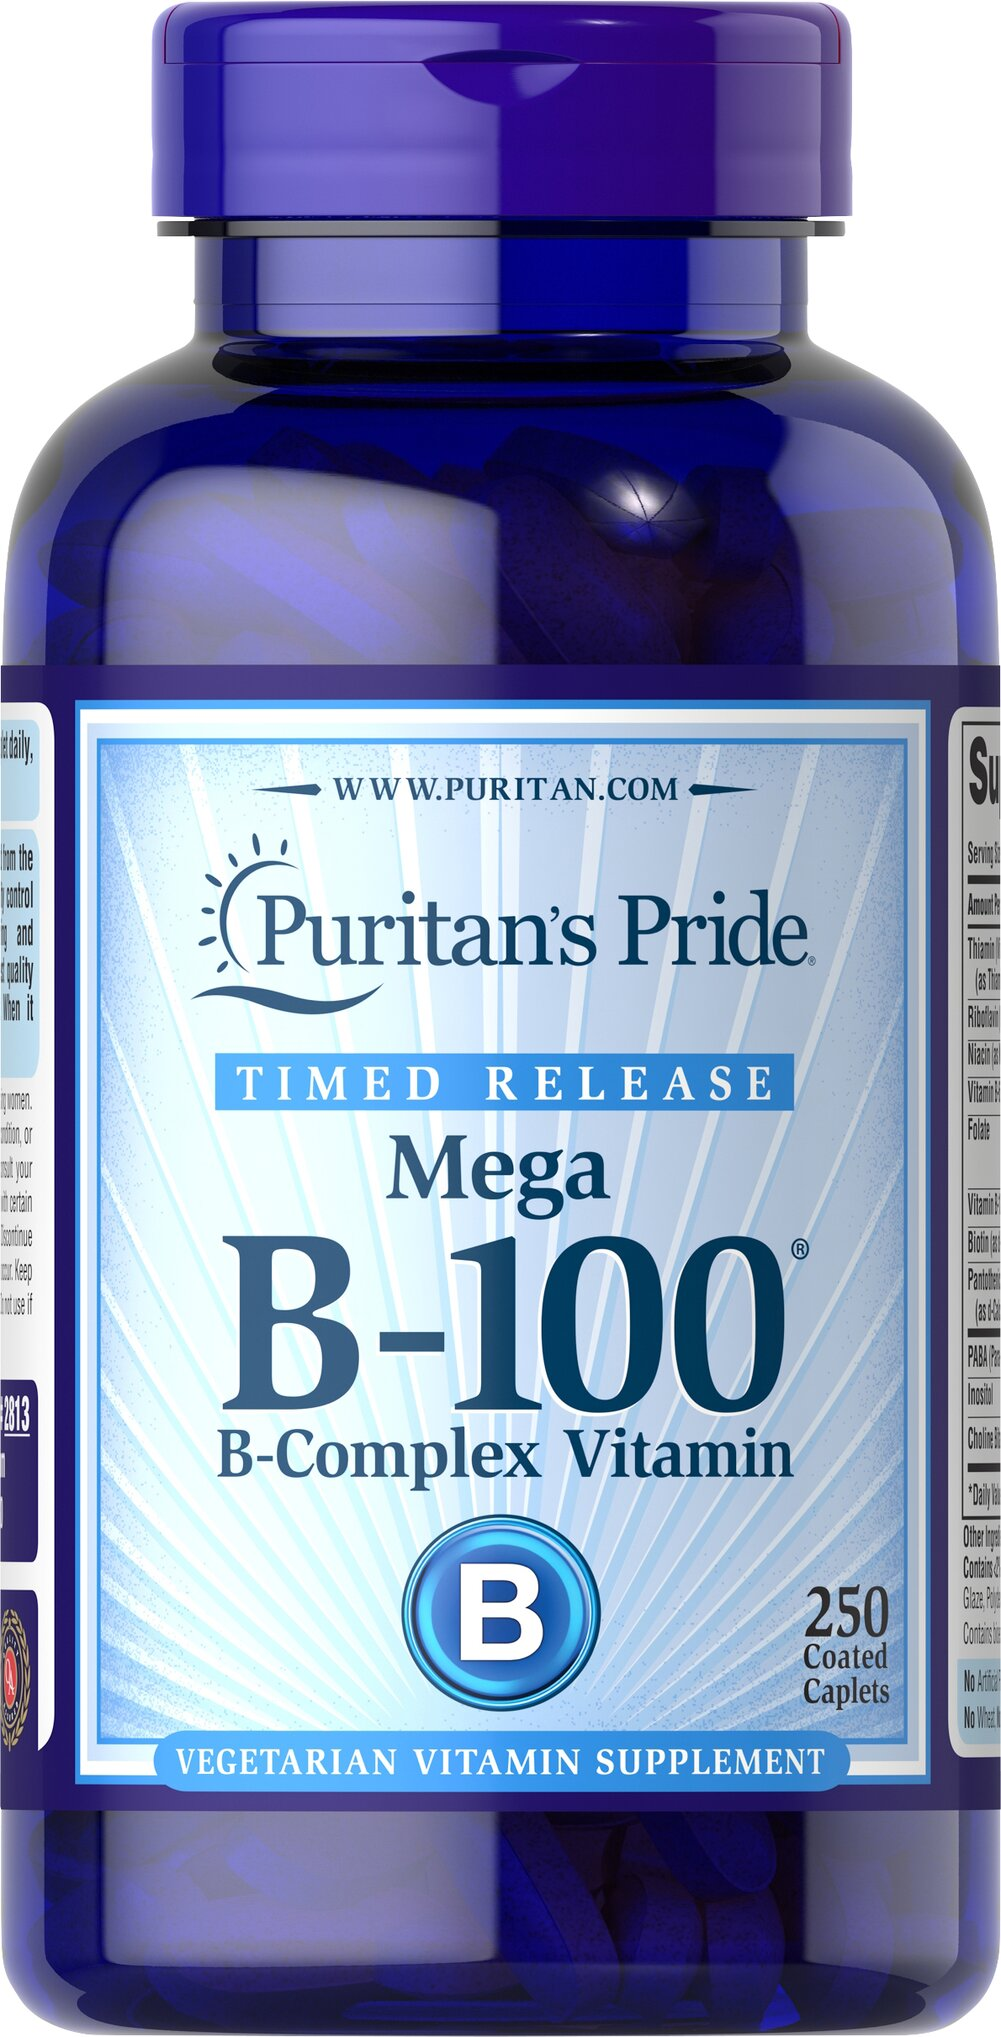 Vitamin B-100® Complex Timed Release <p>Each nutrient in the Vitamin B-100® Complex performs a unique role in maintaining proper metabolic functioning and is essential for well being.** When taken together in a complex formula, the B Vitamins help to maintain the health of the nervous system, skin, eyes and hair.** This product is specially formulated to provide a gradual release of vitamins over a prolonged period of time.</p>  250 Tablets 100 mg $69.99